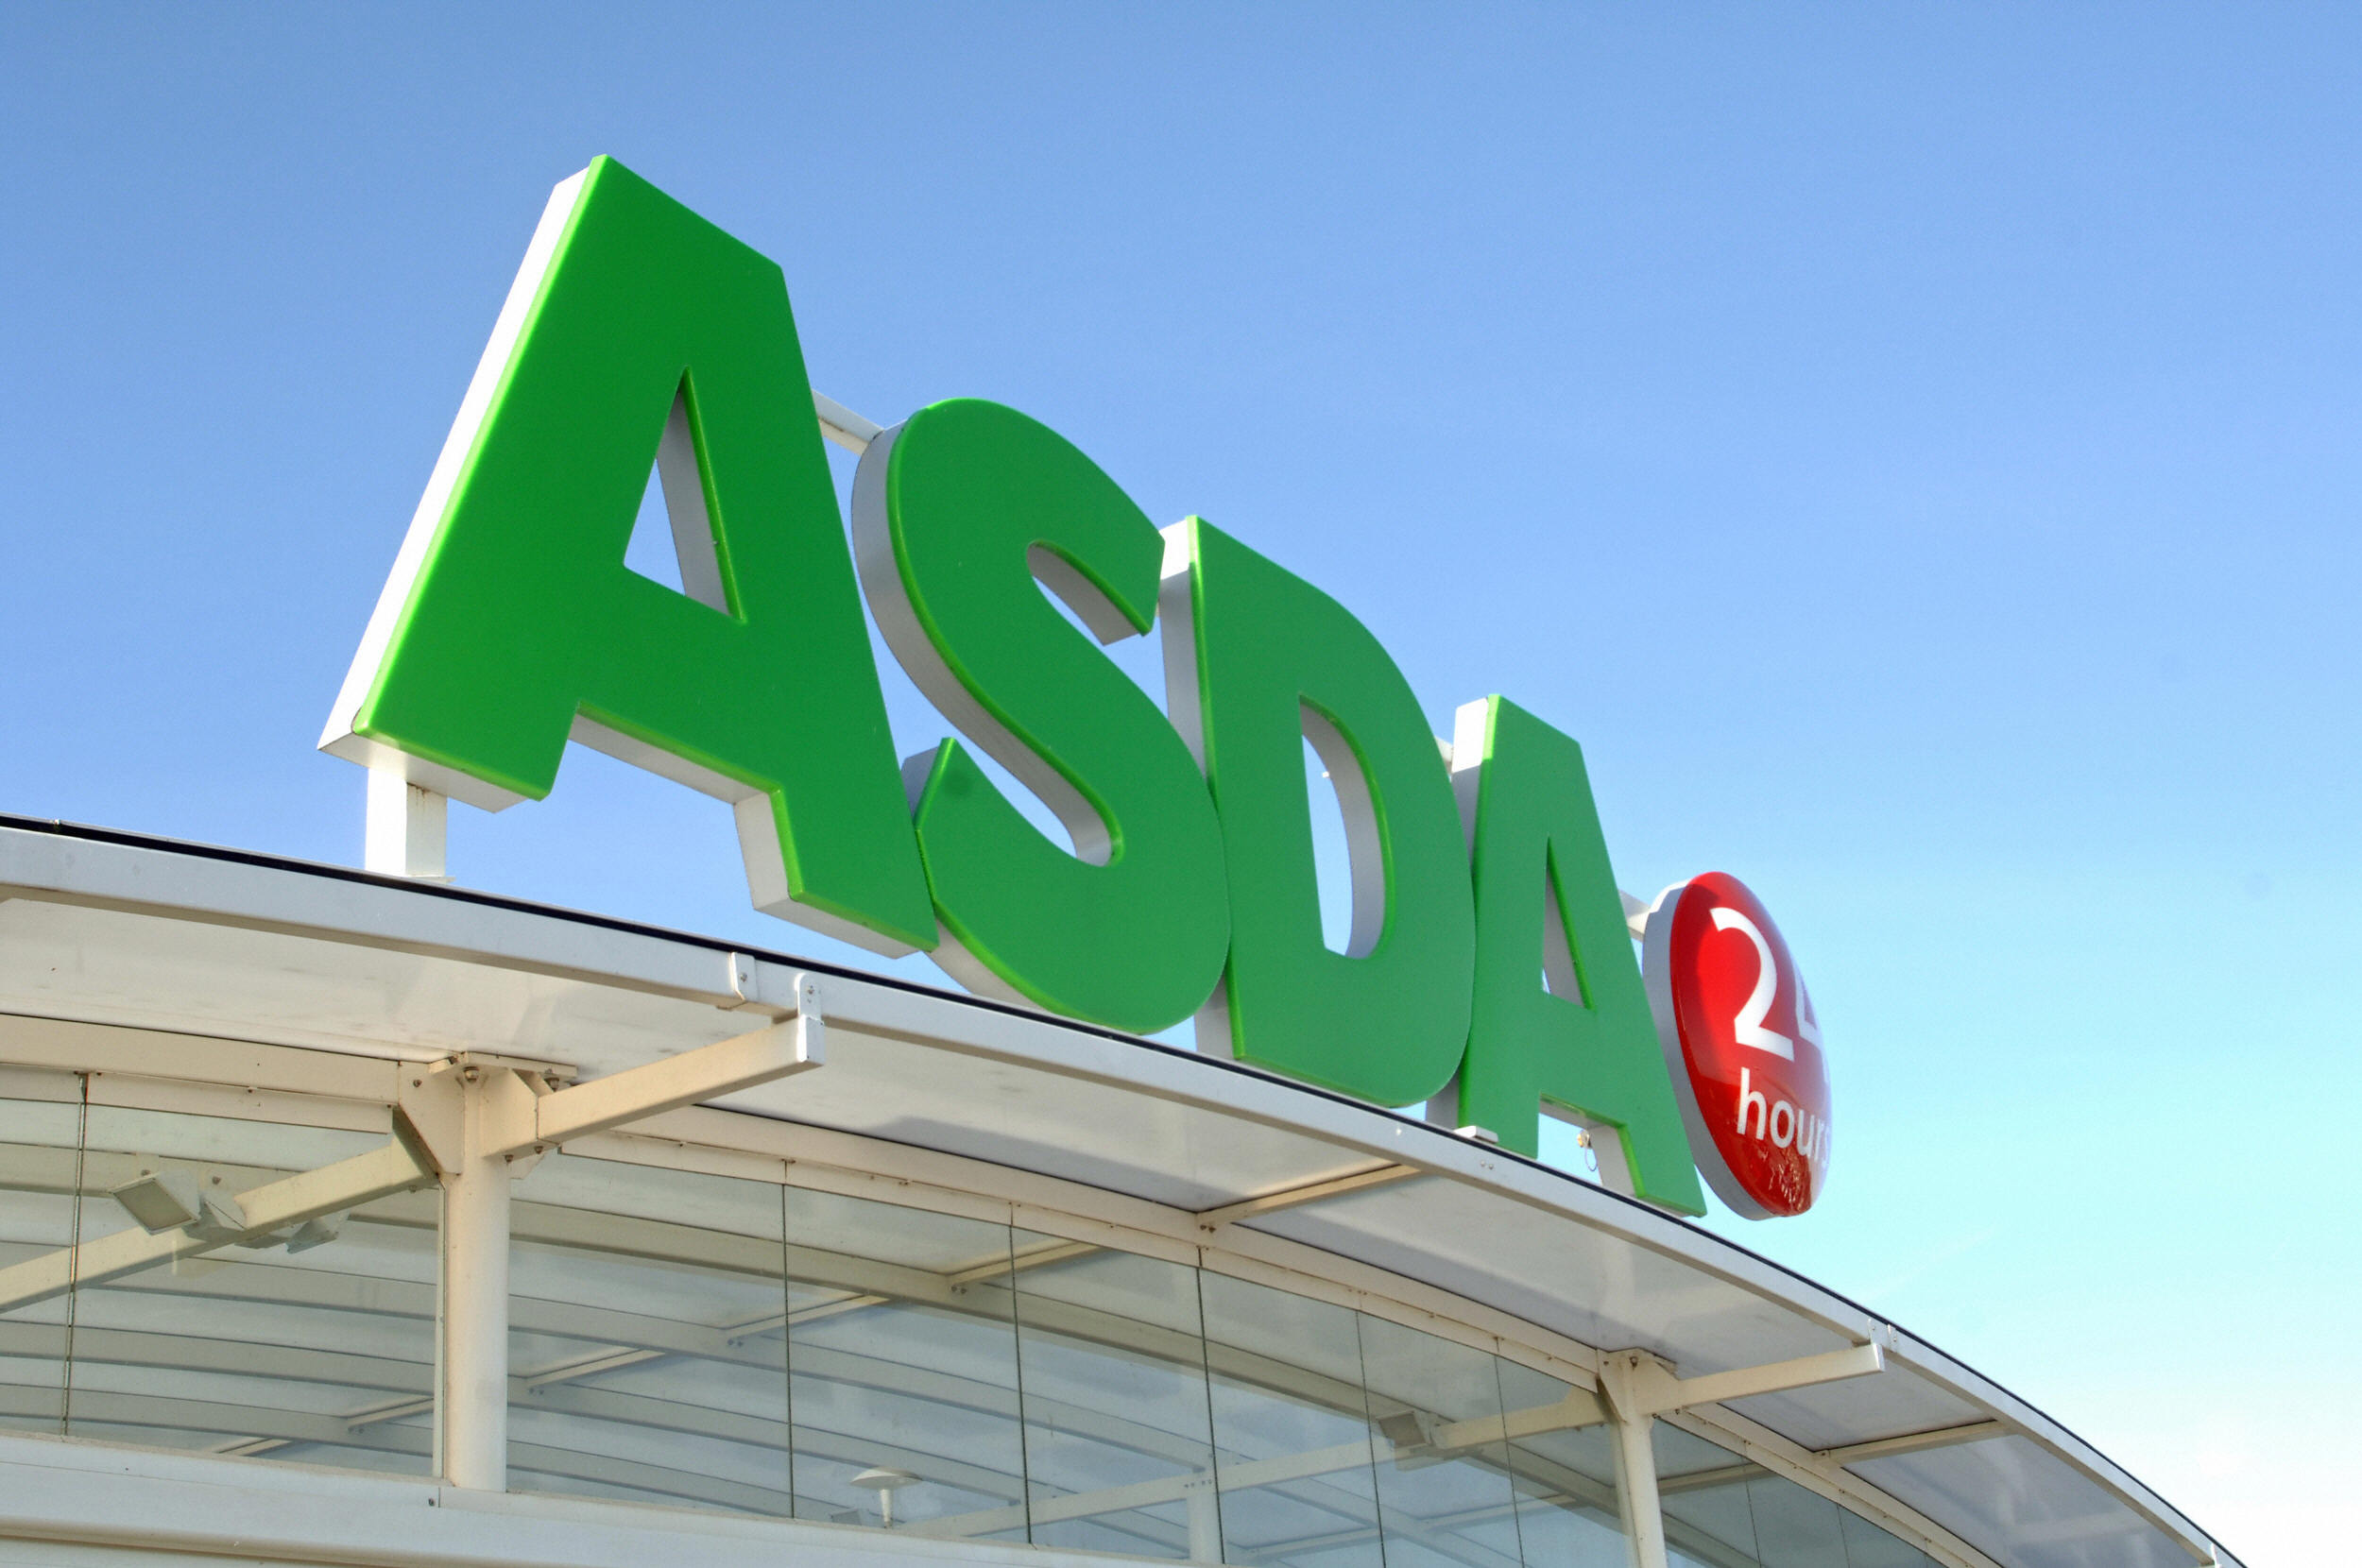 An Asda supermarket store logo is pictur